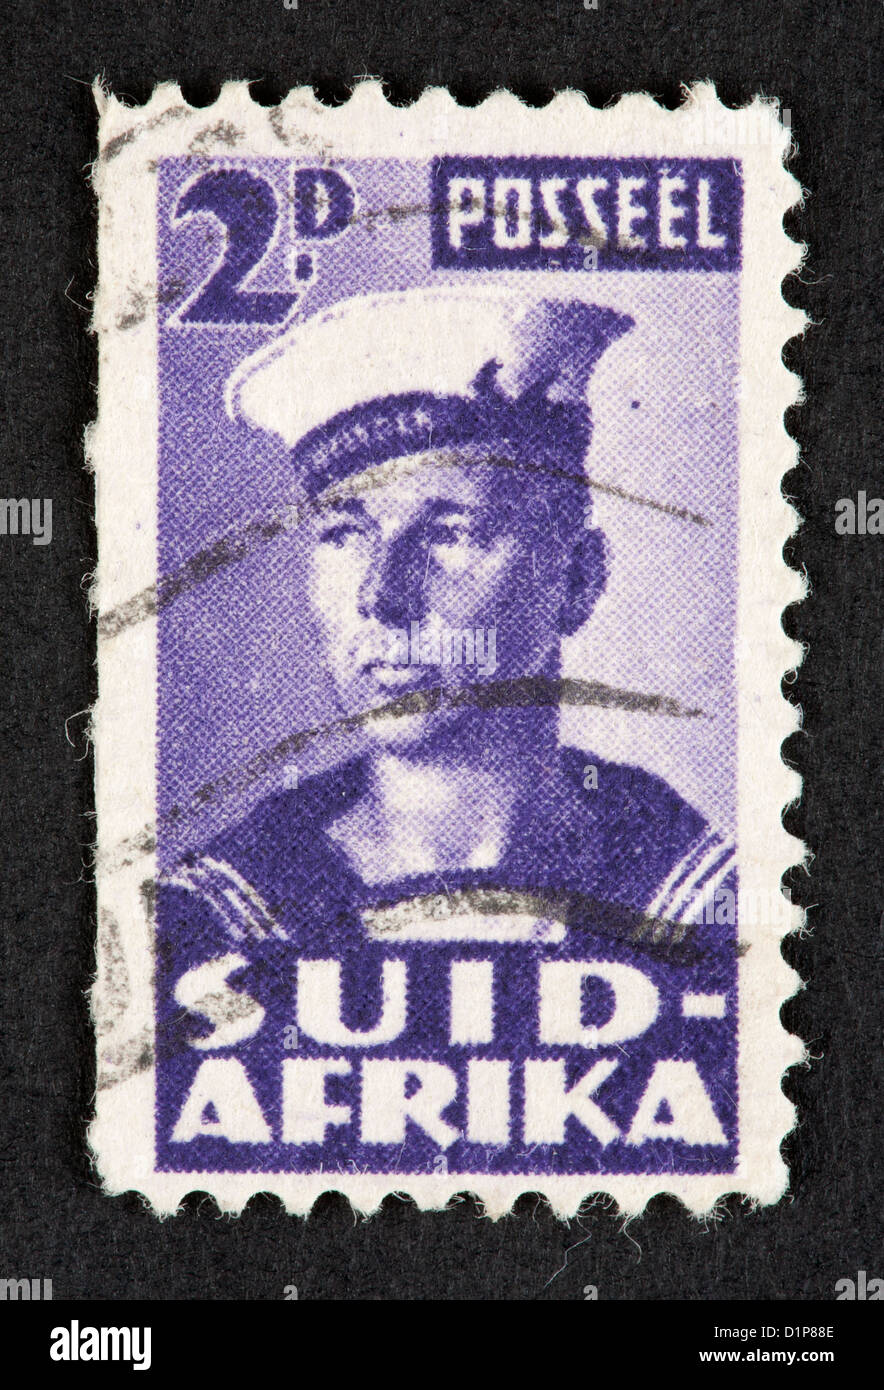 South African postage stamp - Stock Image